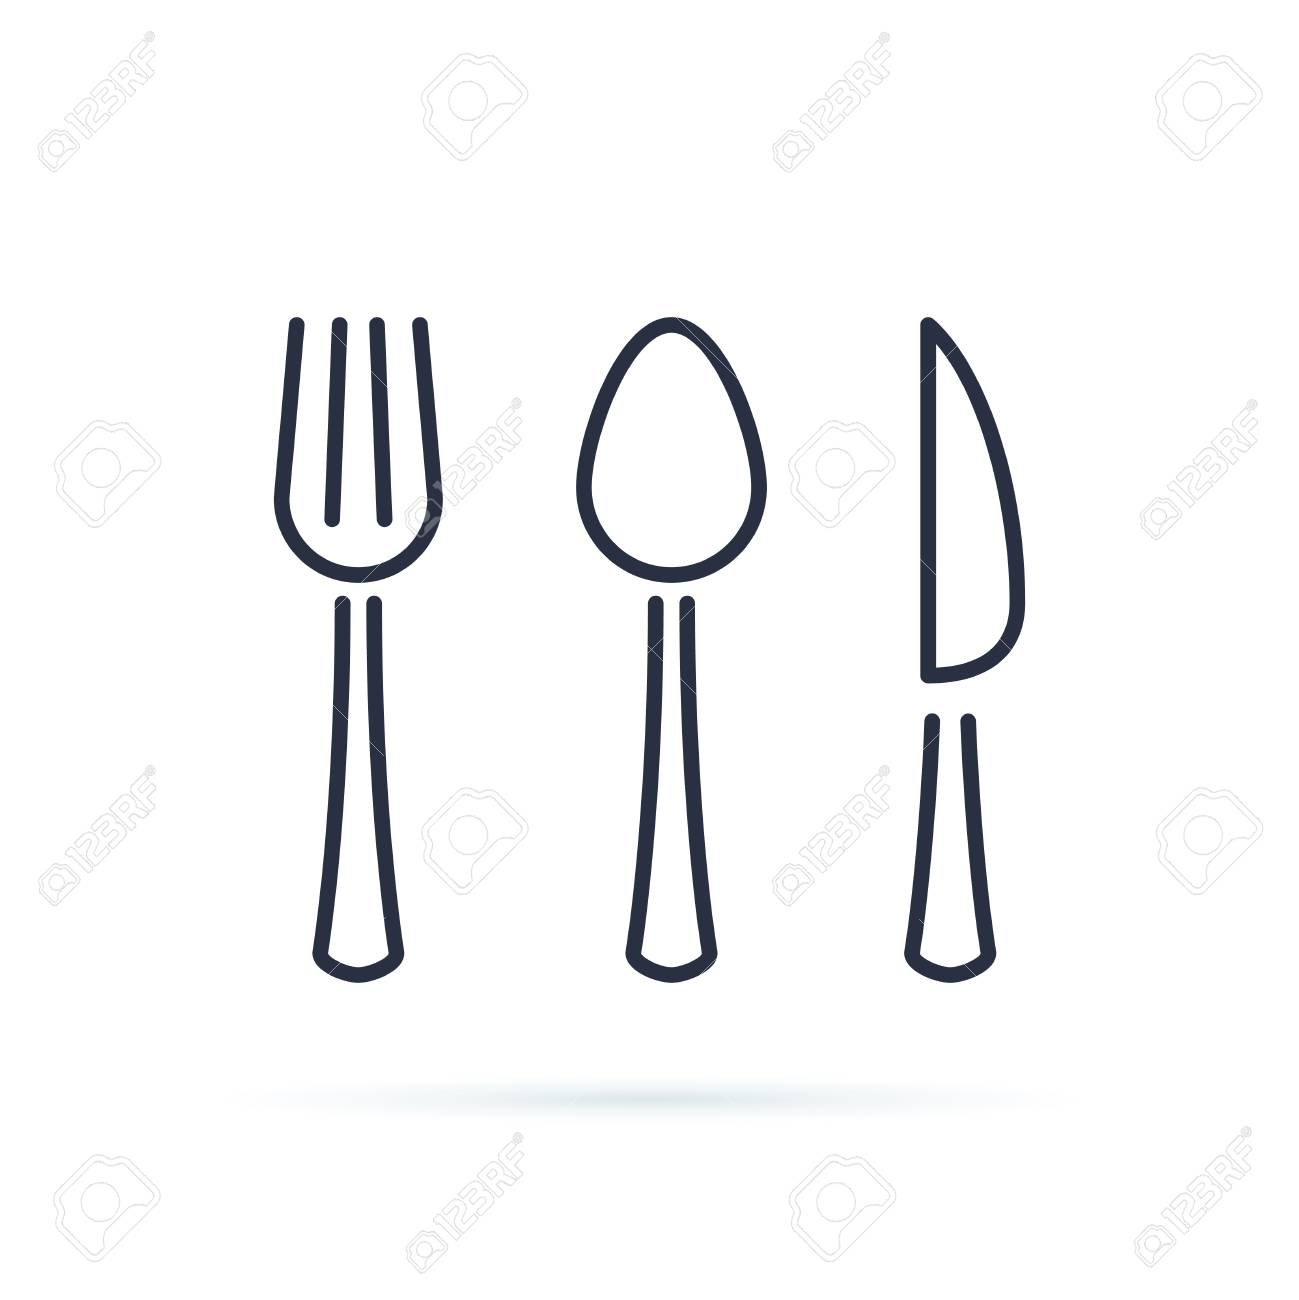 Spoon, fork and knife icon vector. Cutlery icon symbol. Cutlery line icons isolated on white background. Cafe or restaurant symbols, stroke dishware. Dinner tableware. Set of dessert cutlery. - 124688348